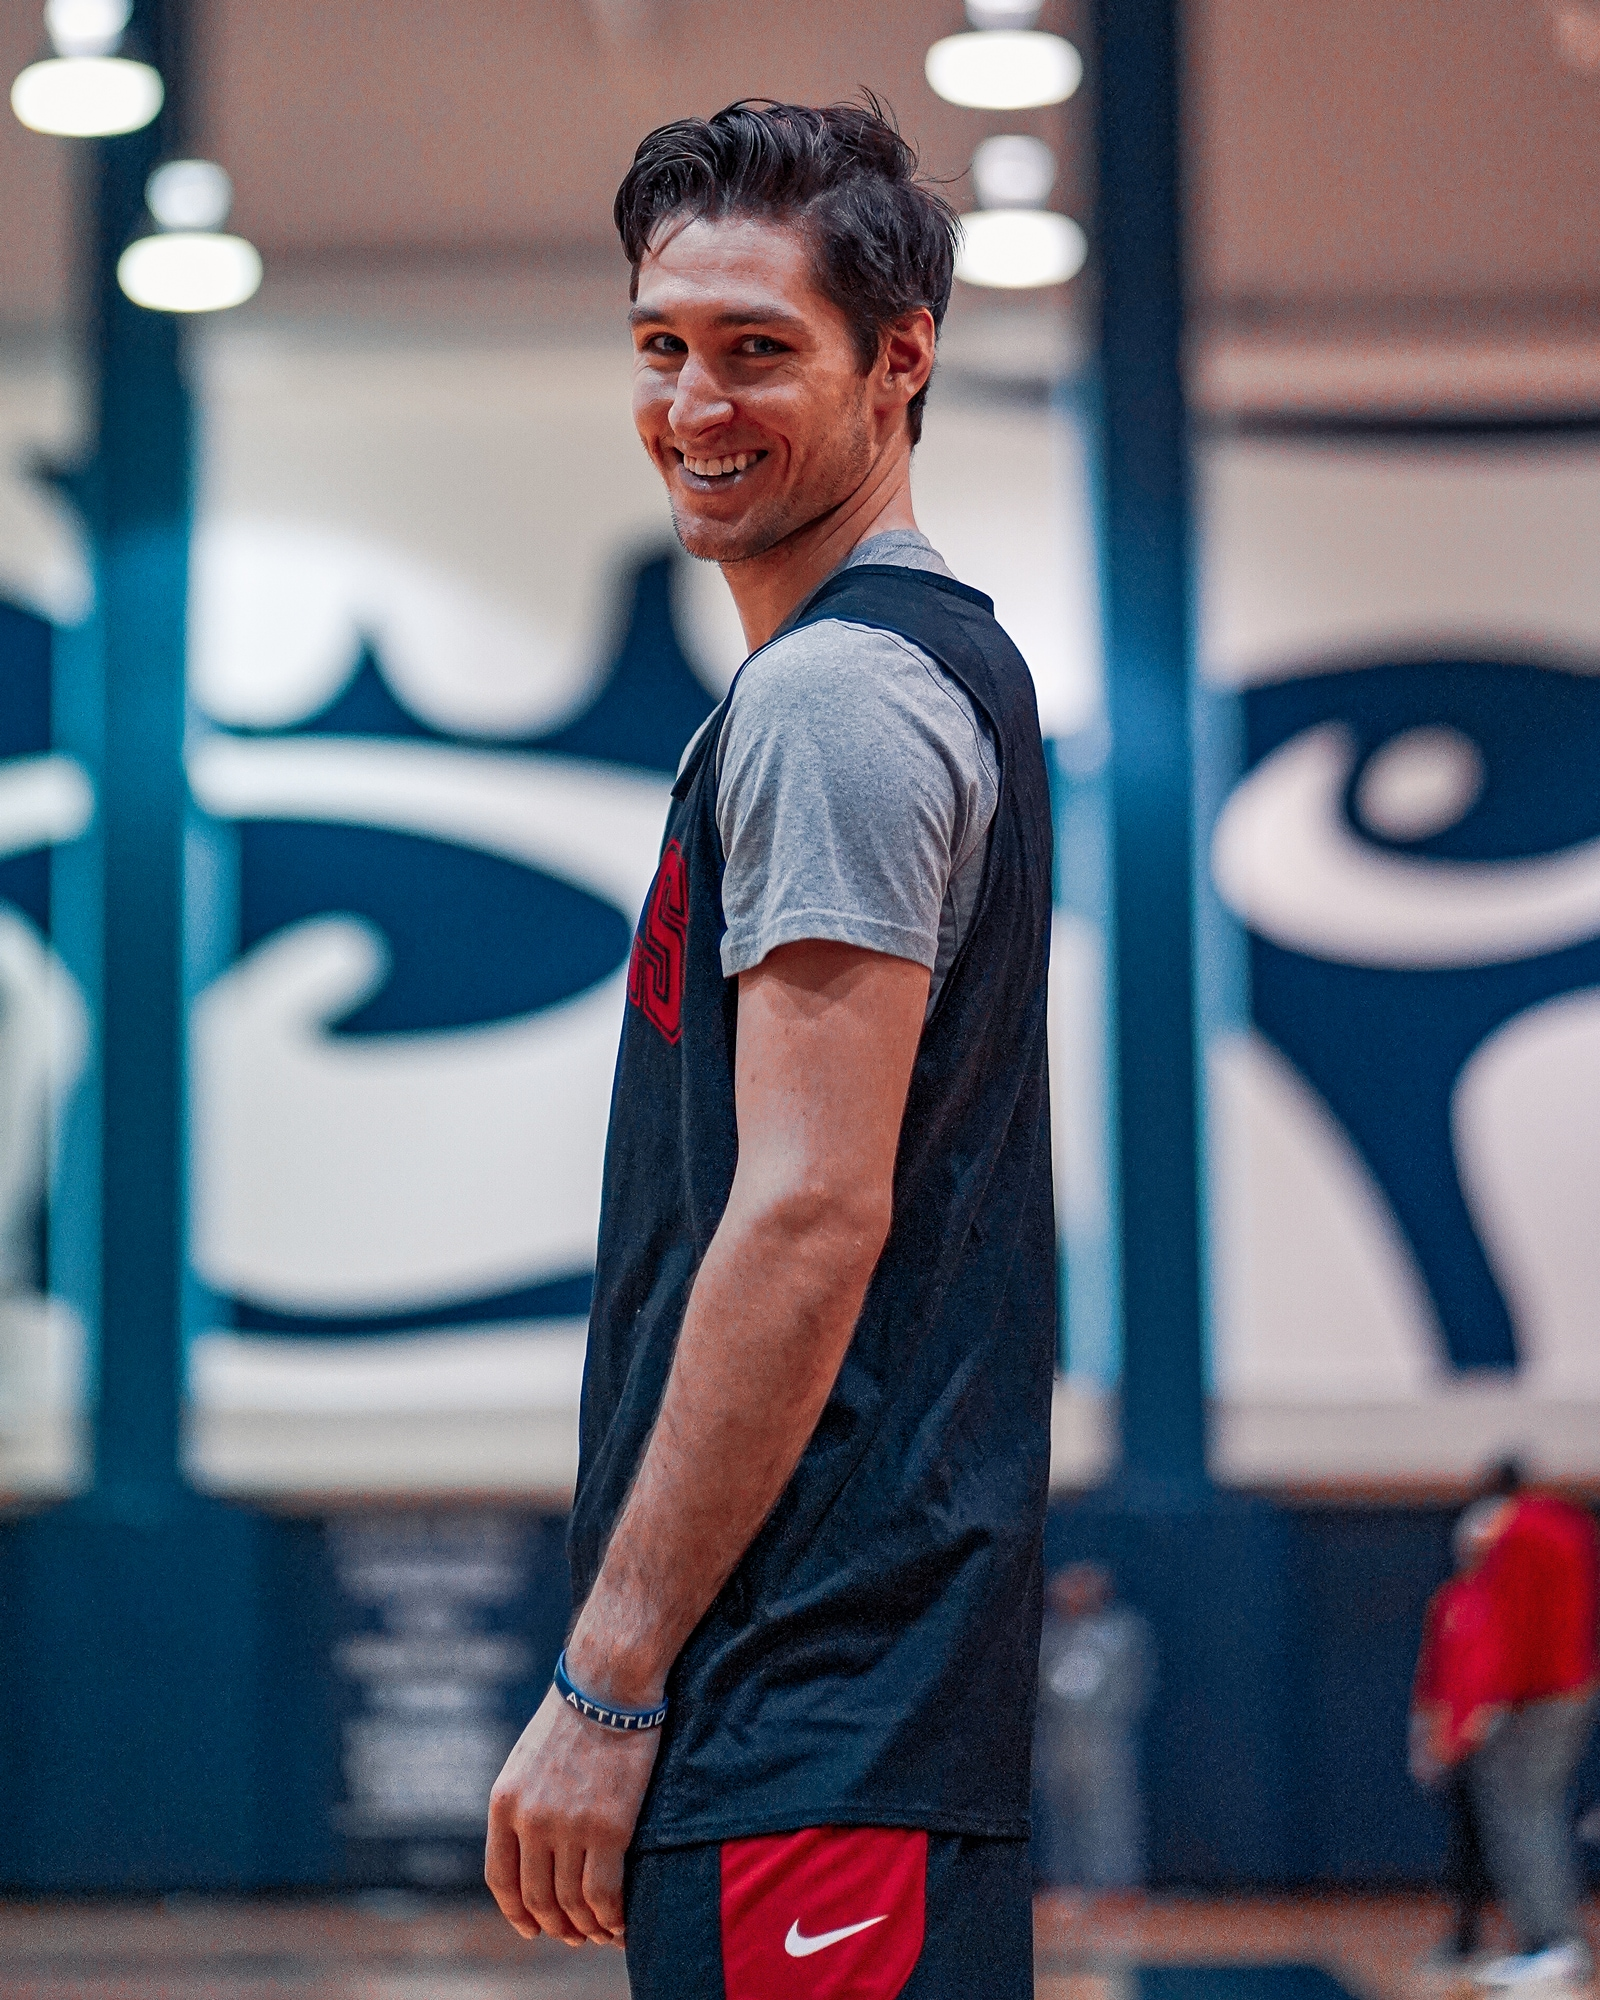 Arcidiacono smiles during a practice at Georgetown University before taking on the Wizards.